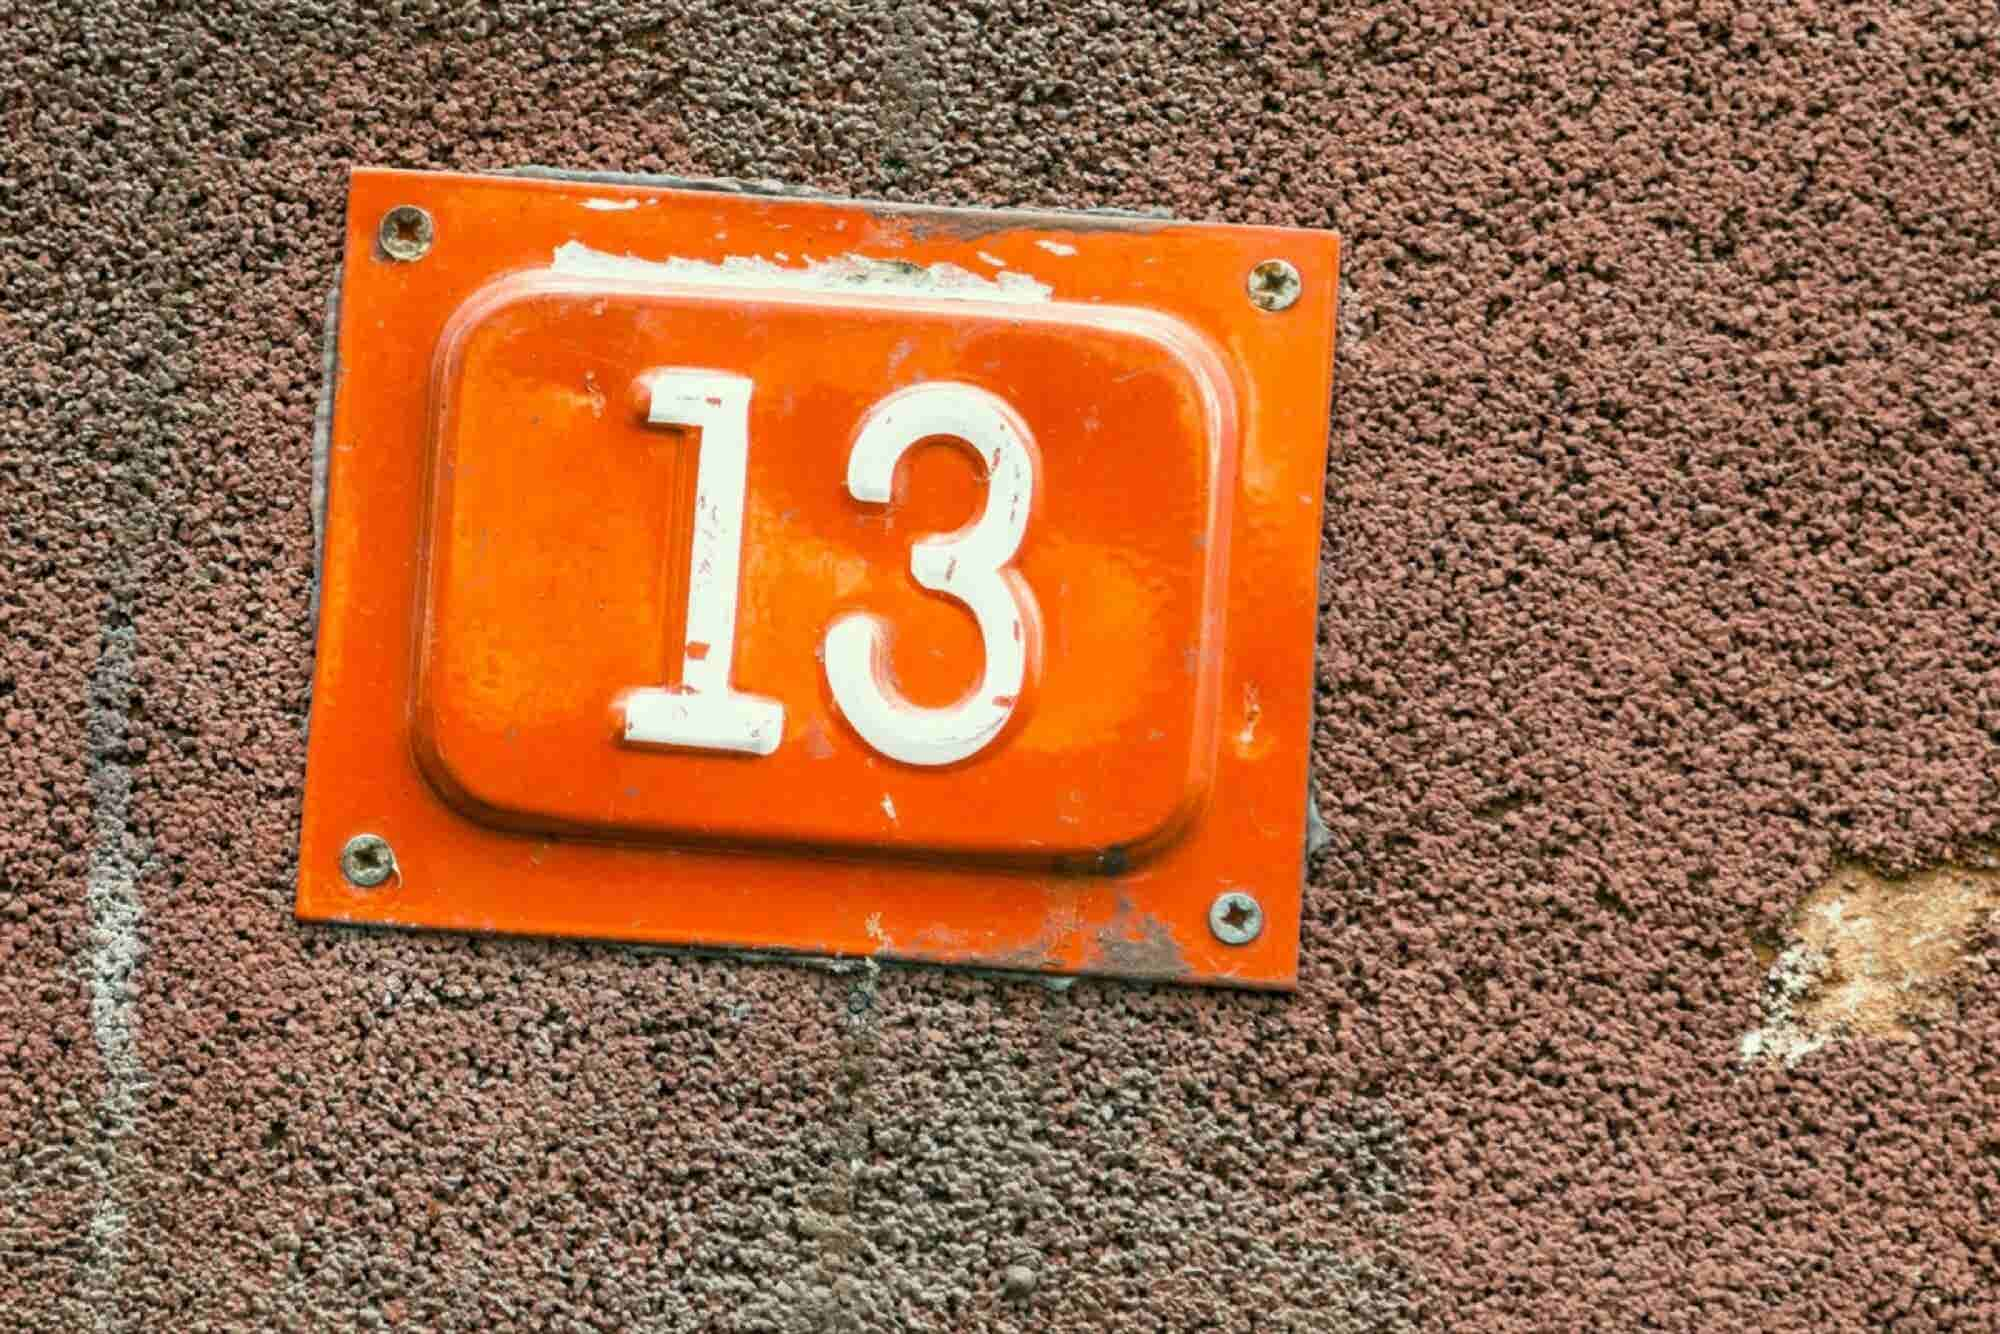 Friday the 13th and Other Unlucky Numbers From Around the World (Infographic)